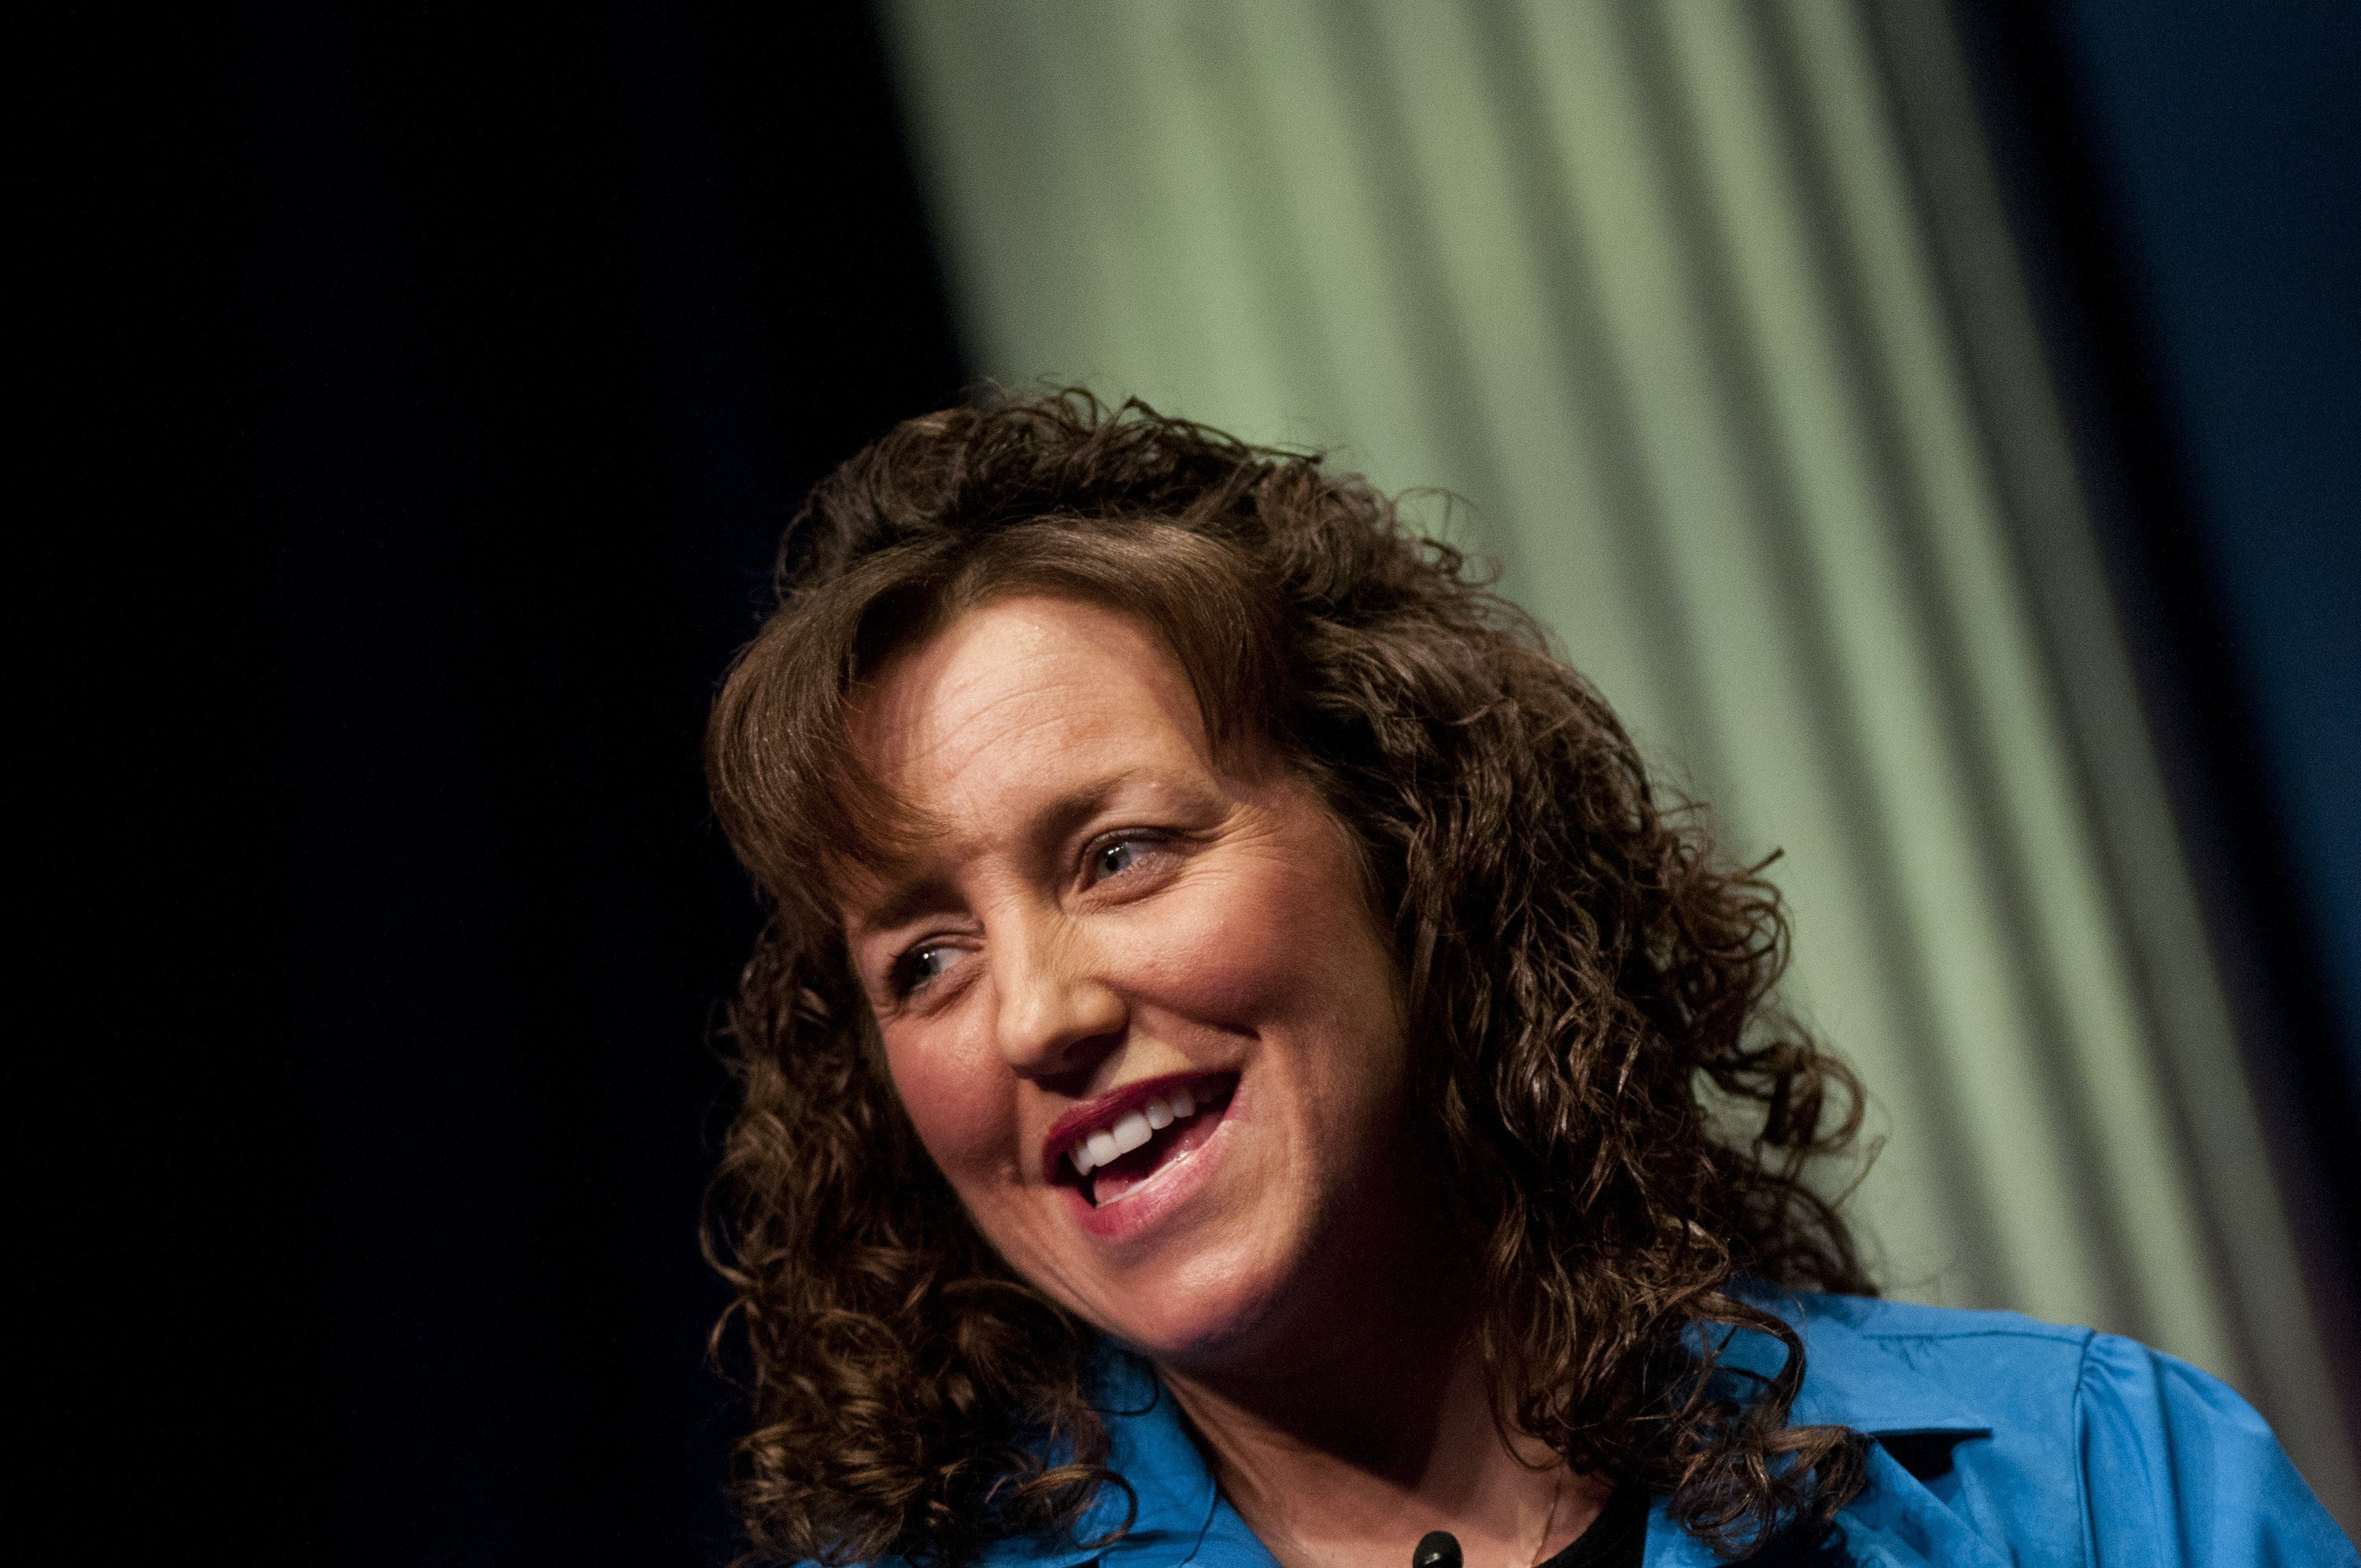 Michelle Duggar at the Conservative Political Action Conference in Washington D.C. | Photo: Getty Images